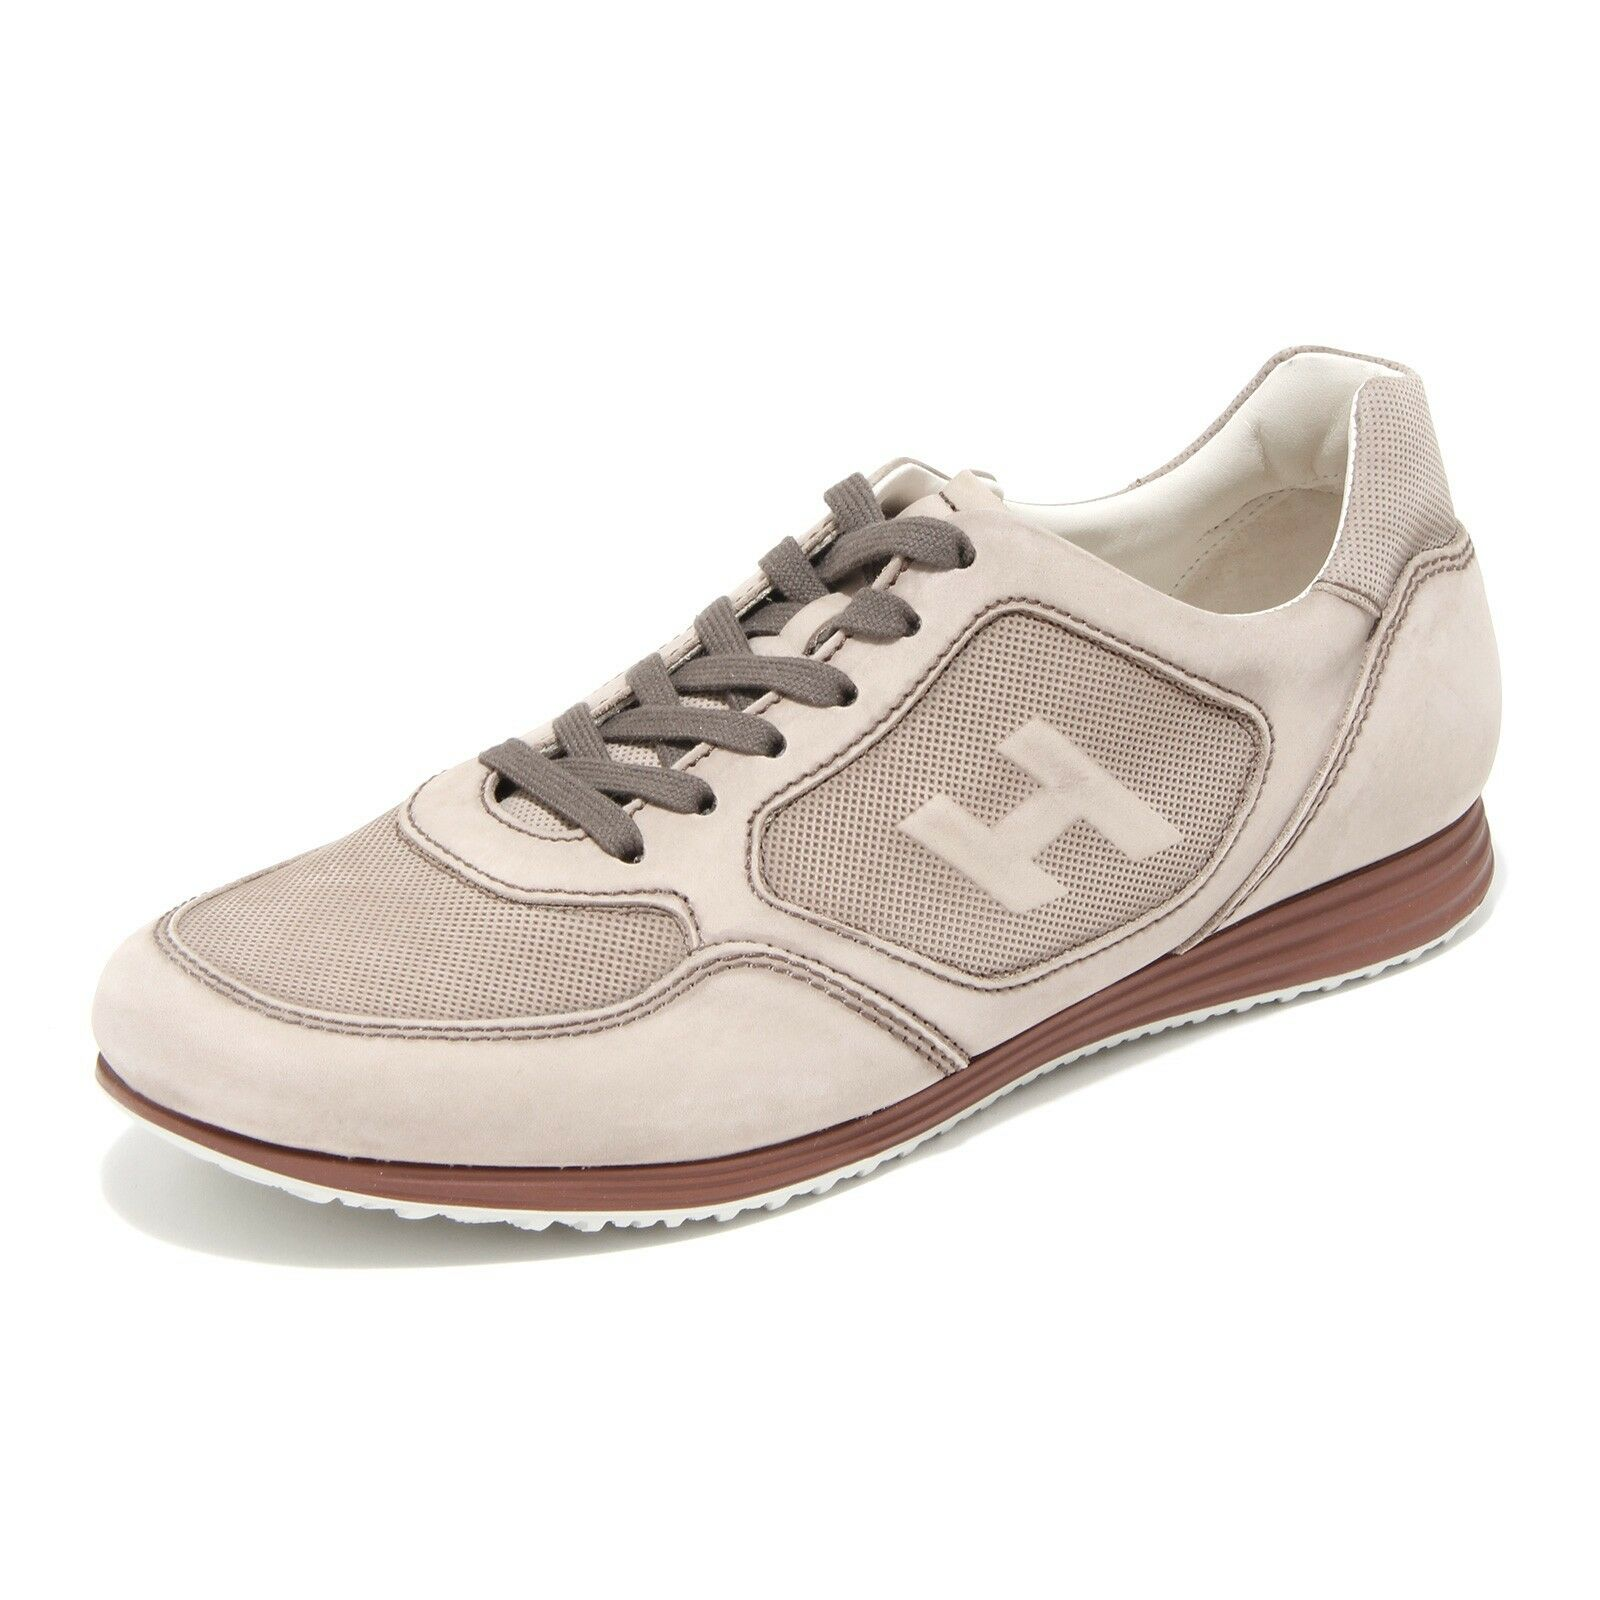 44906 sneaker HOGAN OLYMPIA scarpa uomo shoes men